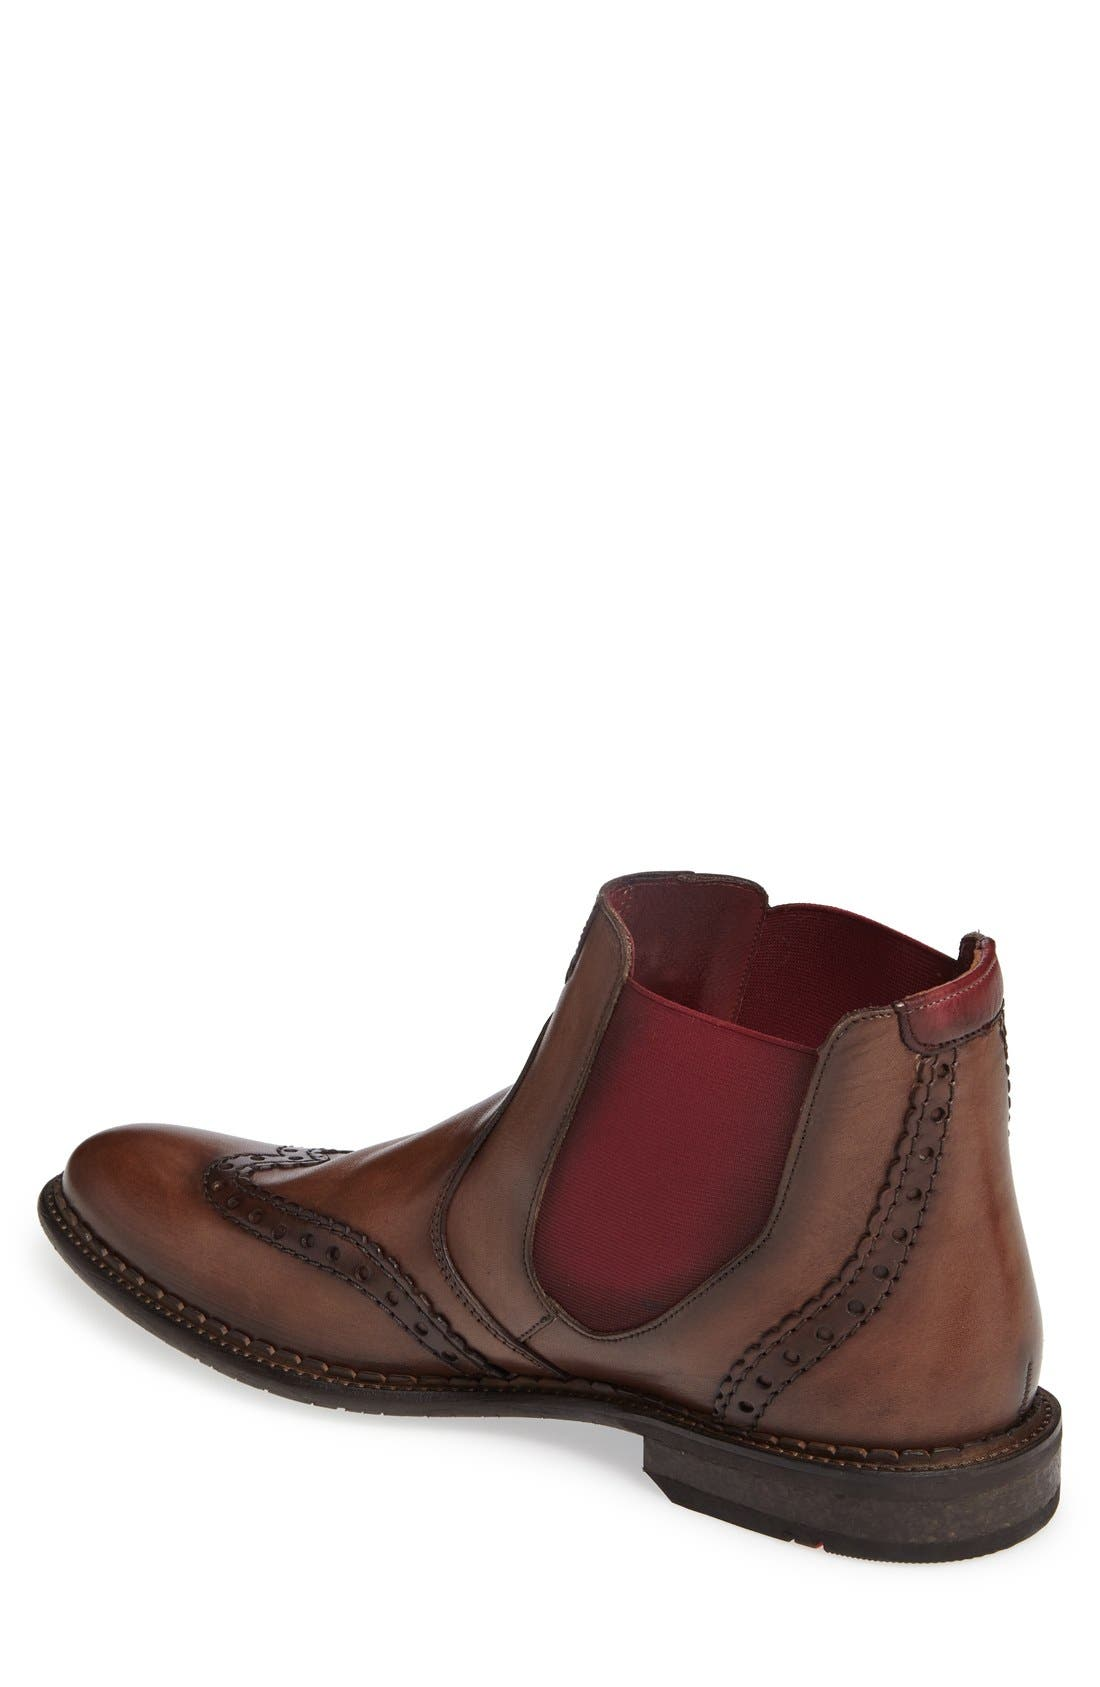 Grenoble Wingtip Chelsea Boot,                             Alternate thumbnail 2, color,                             Tobacco/ Bordo